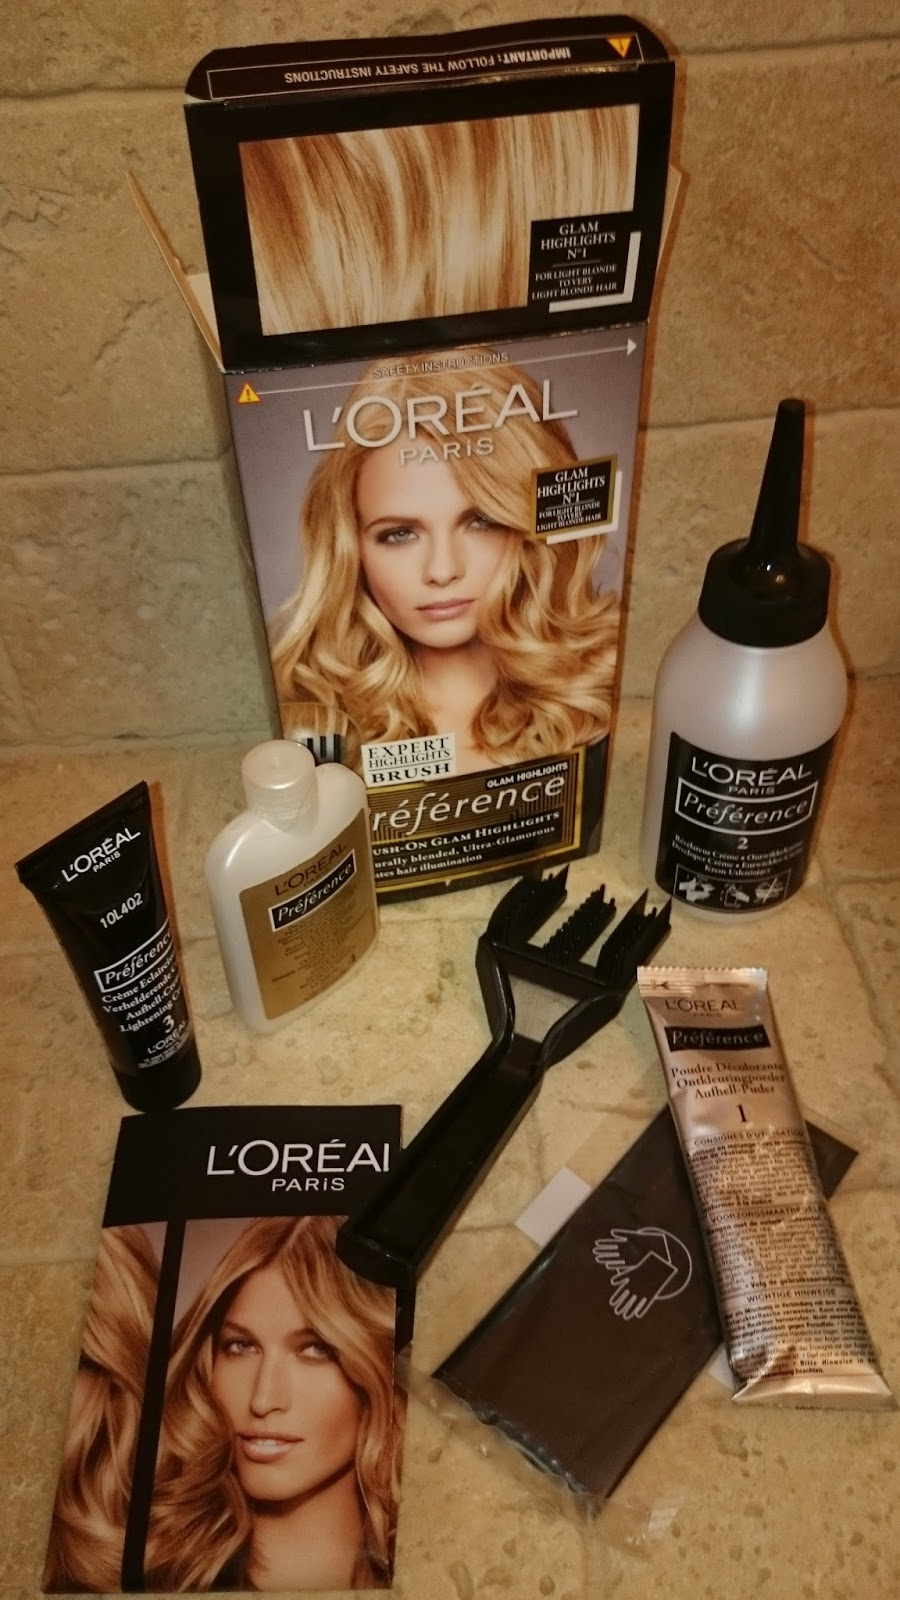 l'oreal preference glam highlights kit hair dye home DIY